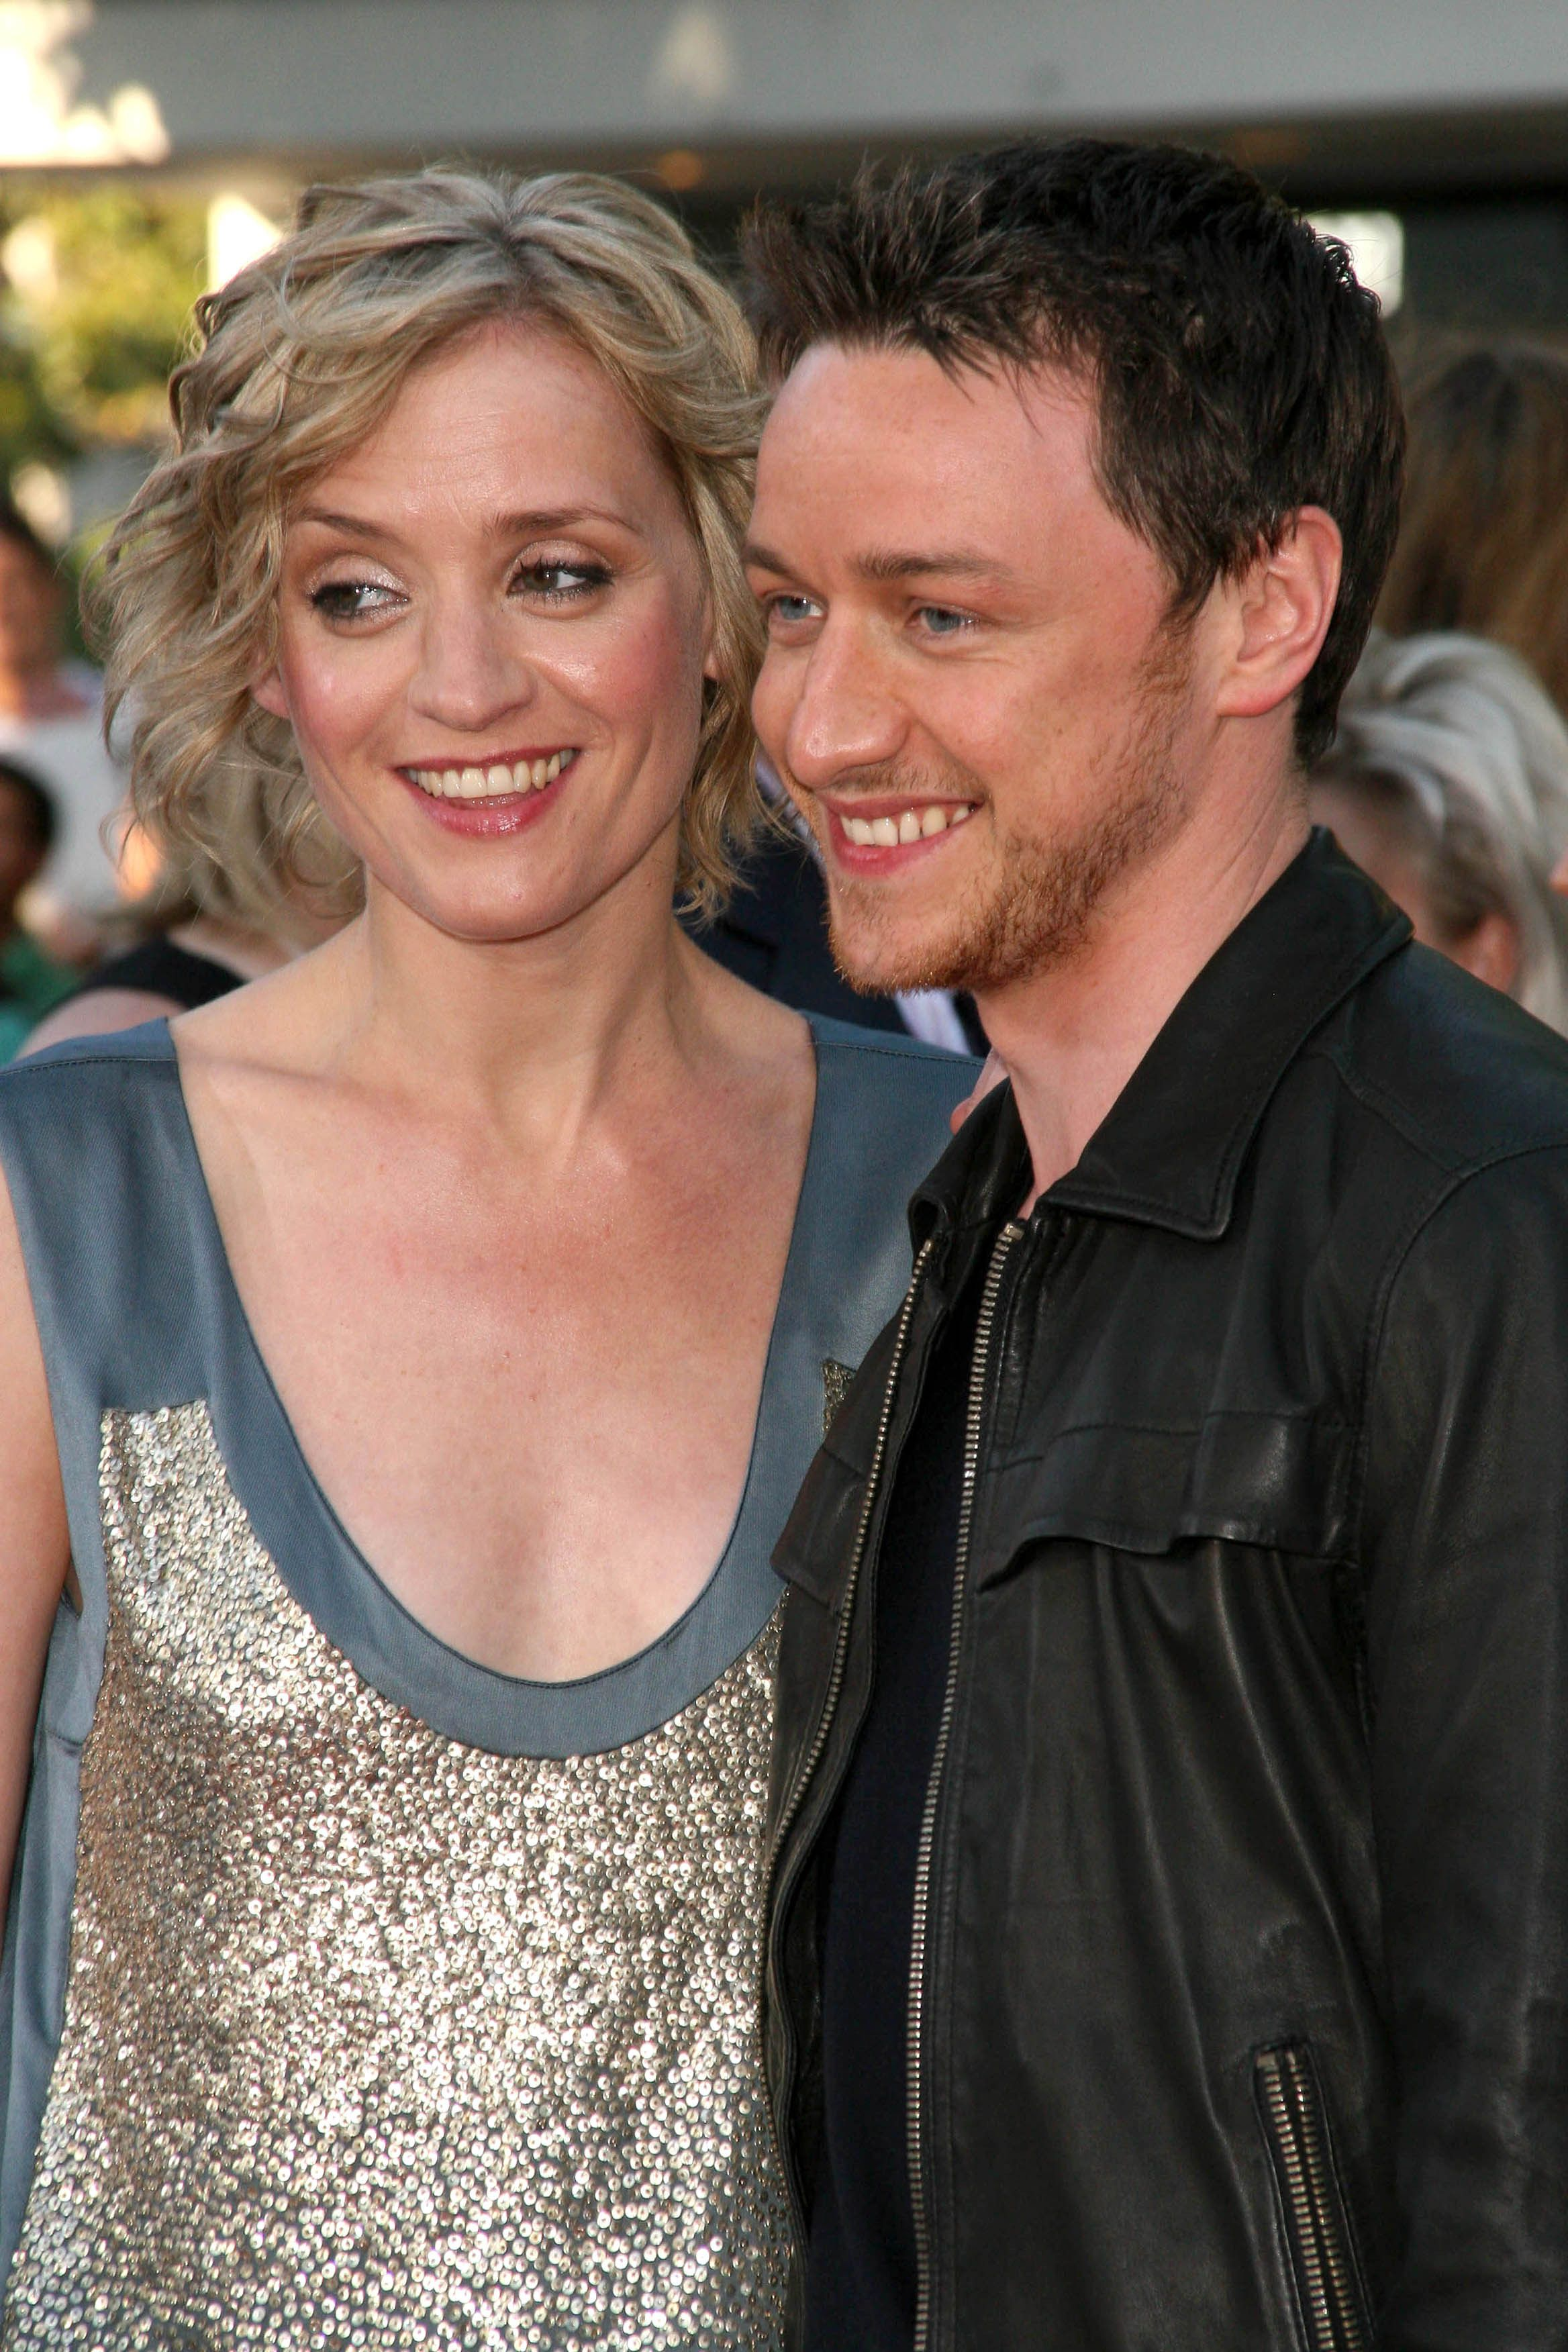 bigstock-Anne-Marie-Duff-and-James-McAv-58056251